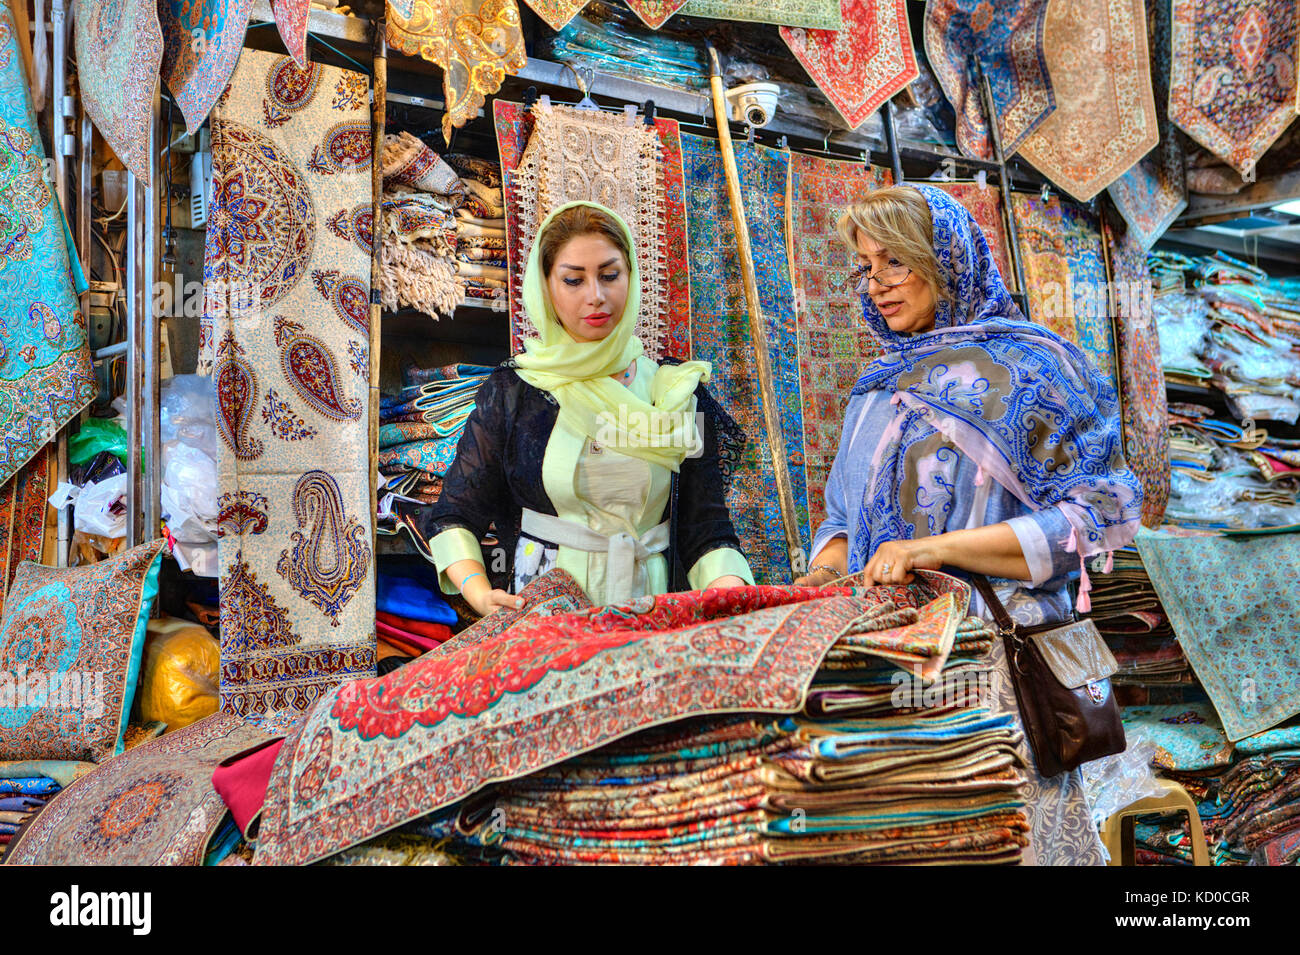 Fars Province, Shiraz, Iran - 19 april, 2017:  Two fashionable Iranian women, young and mature, dressed in bright - Stock Image